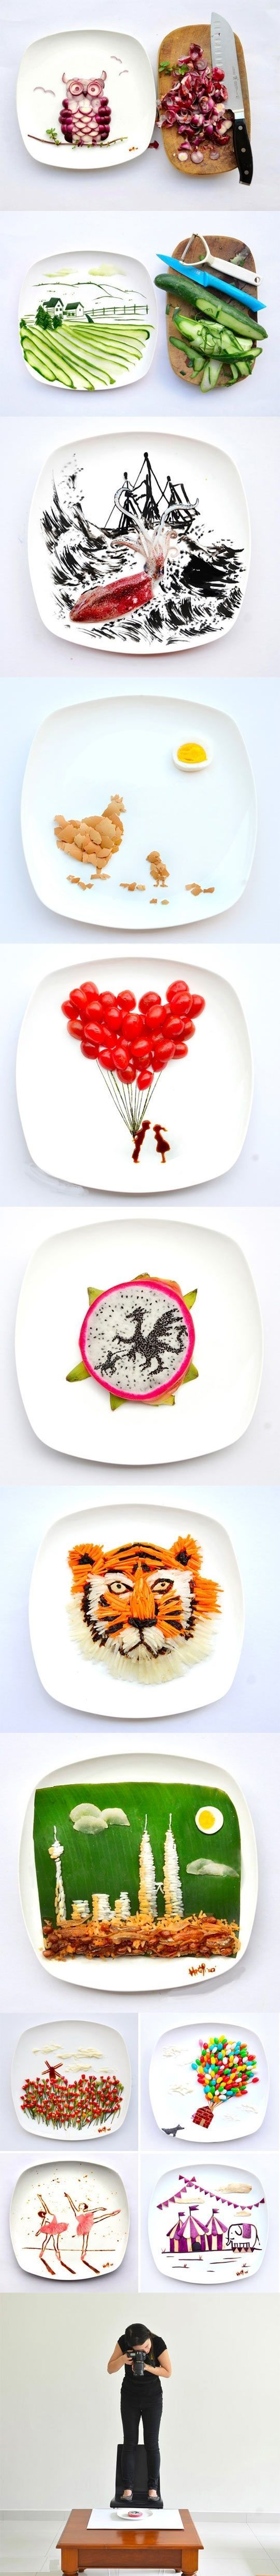 Food art. Whoever said don't play with your food never thought big enough to dream up this. Amazing